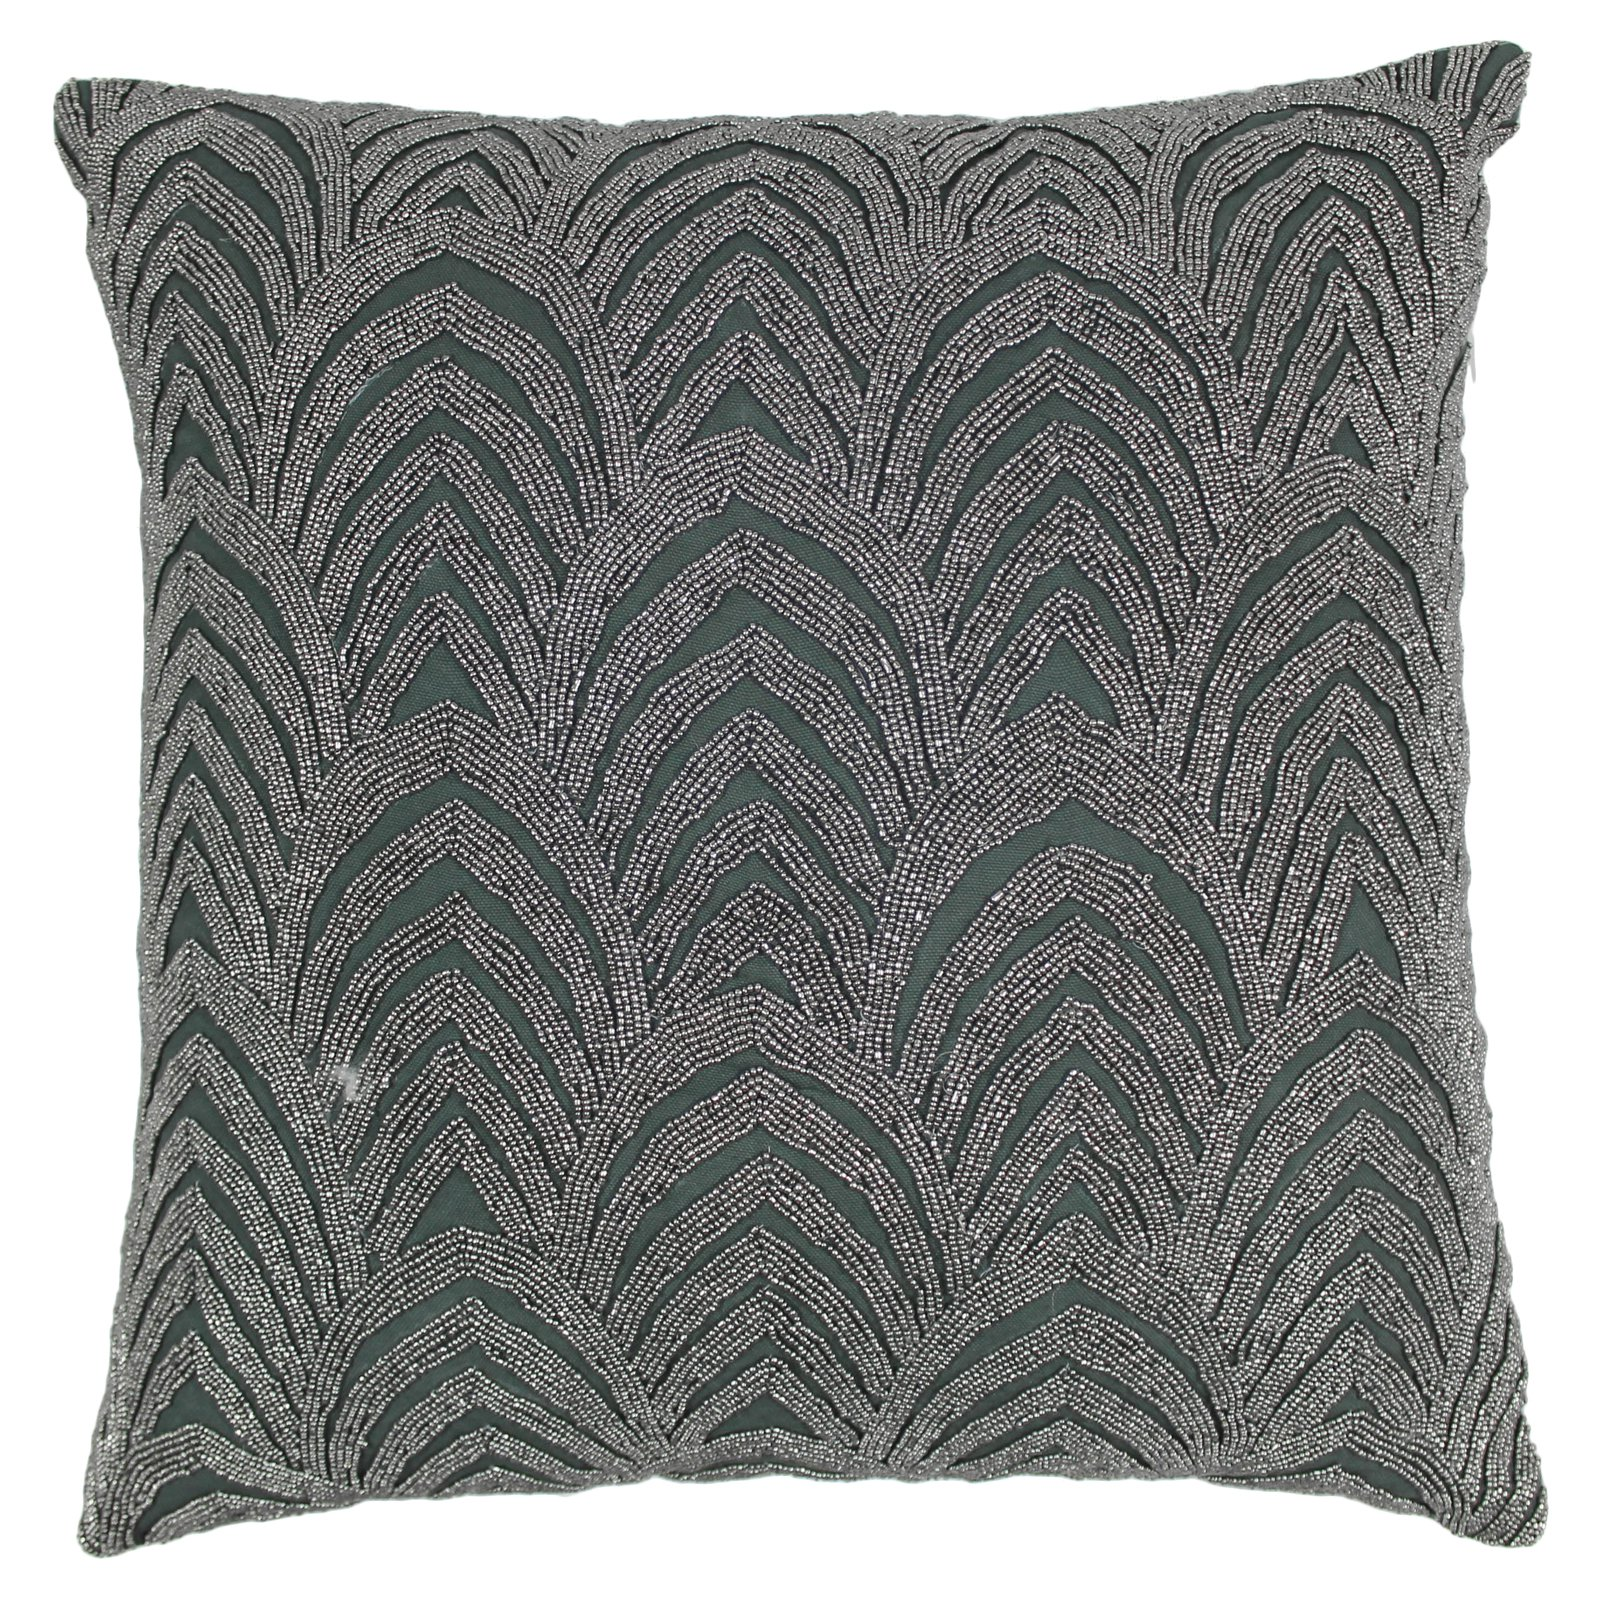 Blazing Needles 20 x 20 in. Arching Fans Beaded Throw Pillow